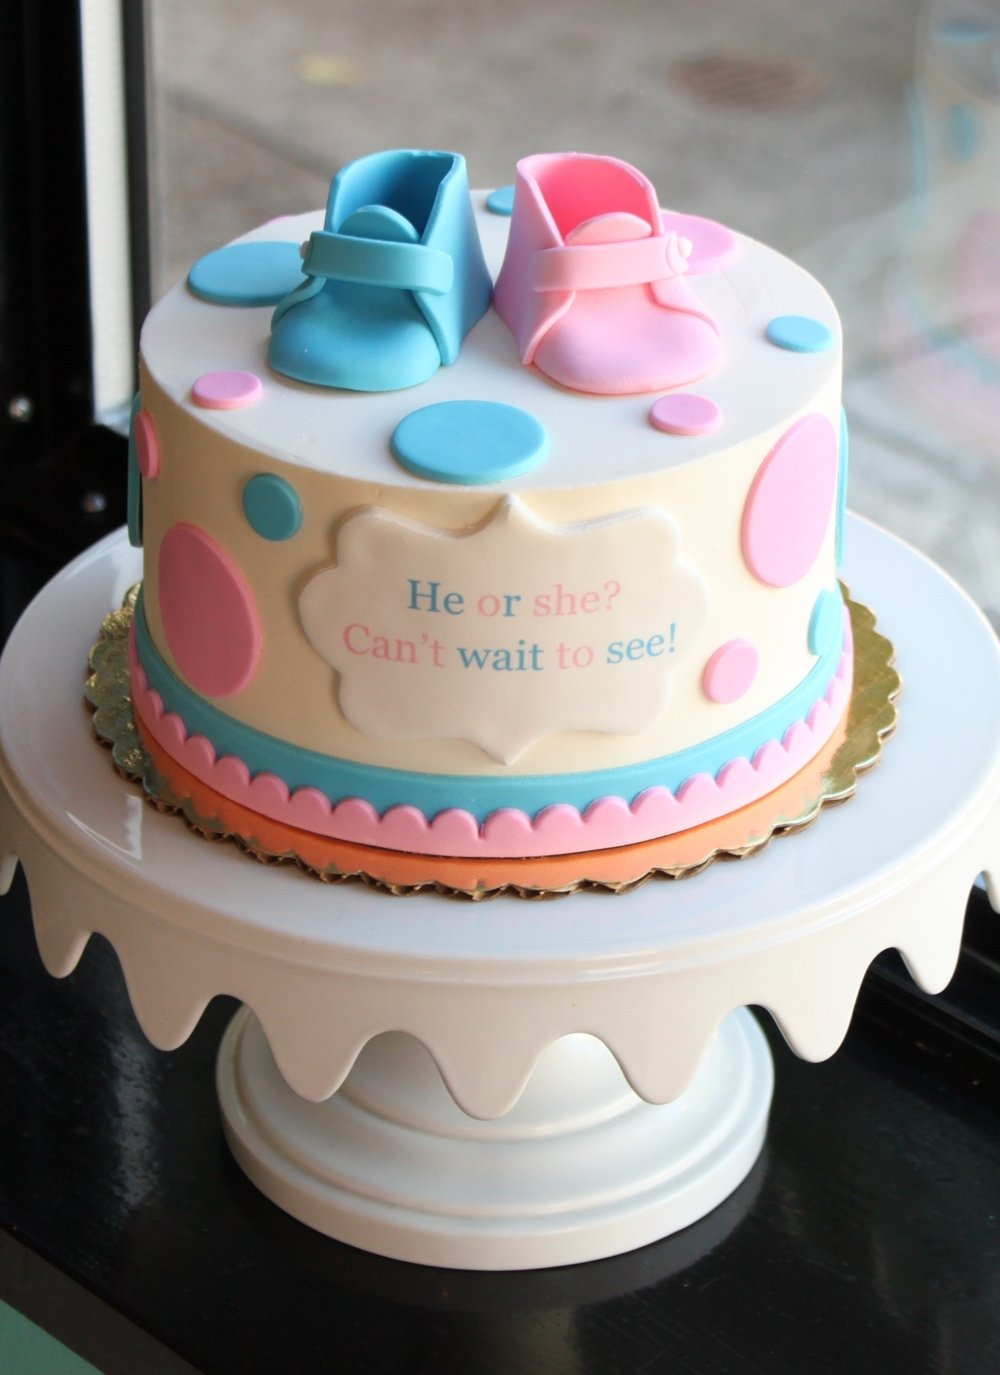 10 Beautiful Baby Gender Reveal Cake Ideas baby shower cake ideas booties unique baby booties gender reveal 2020